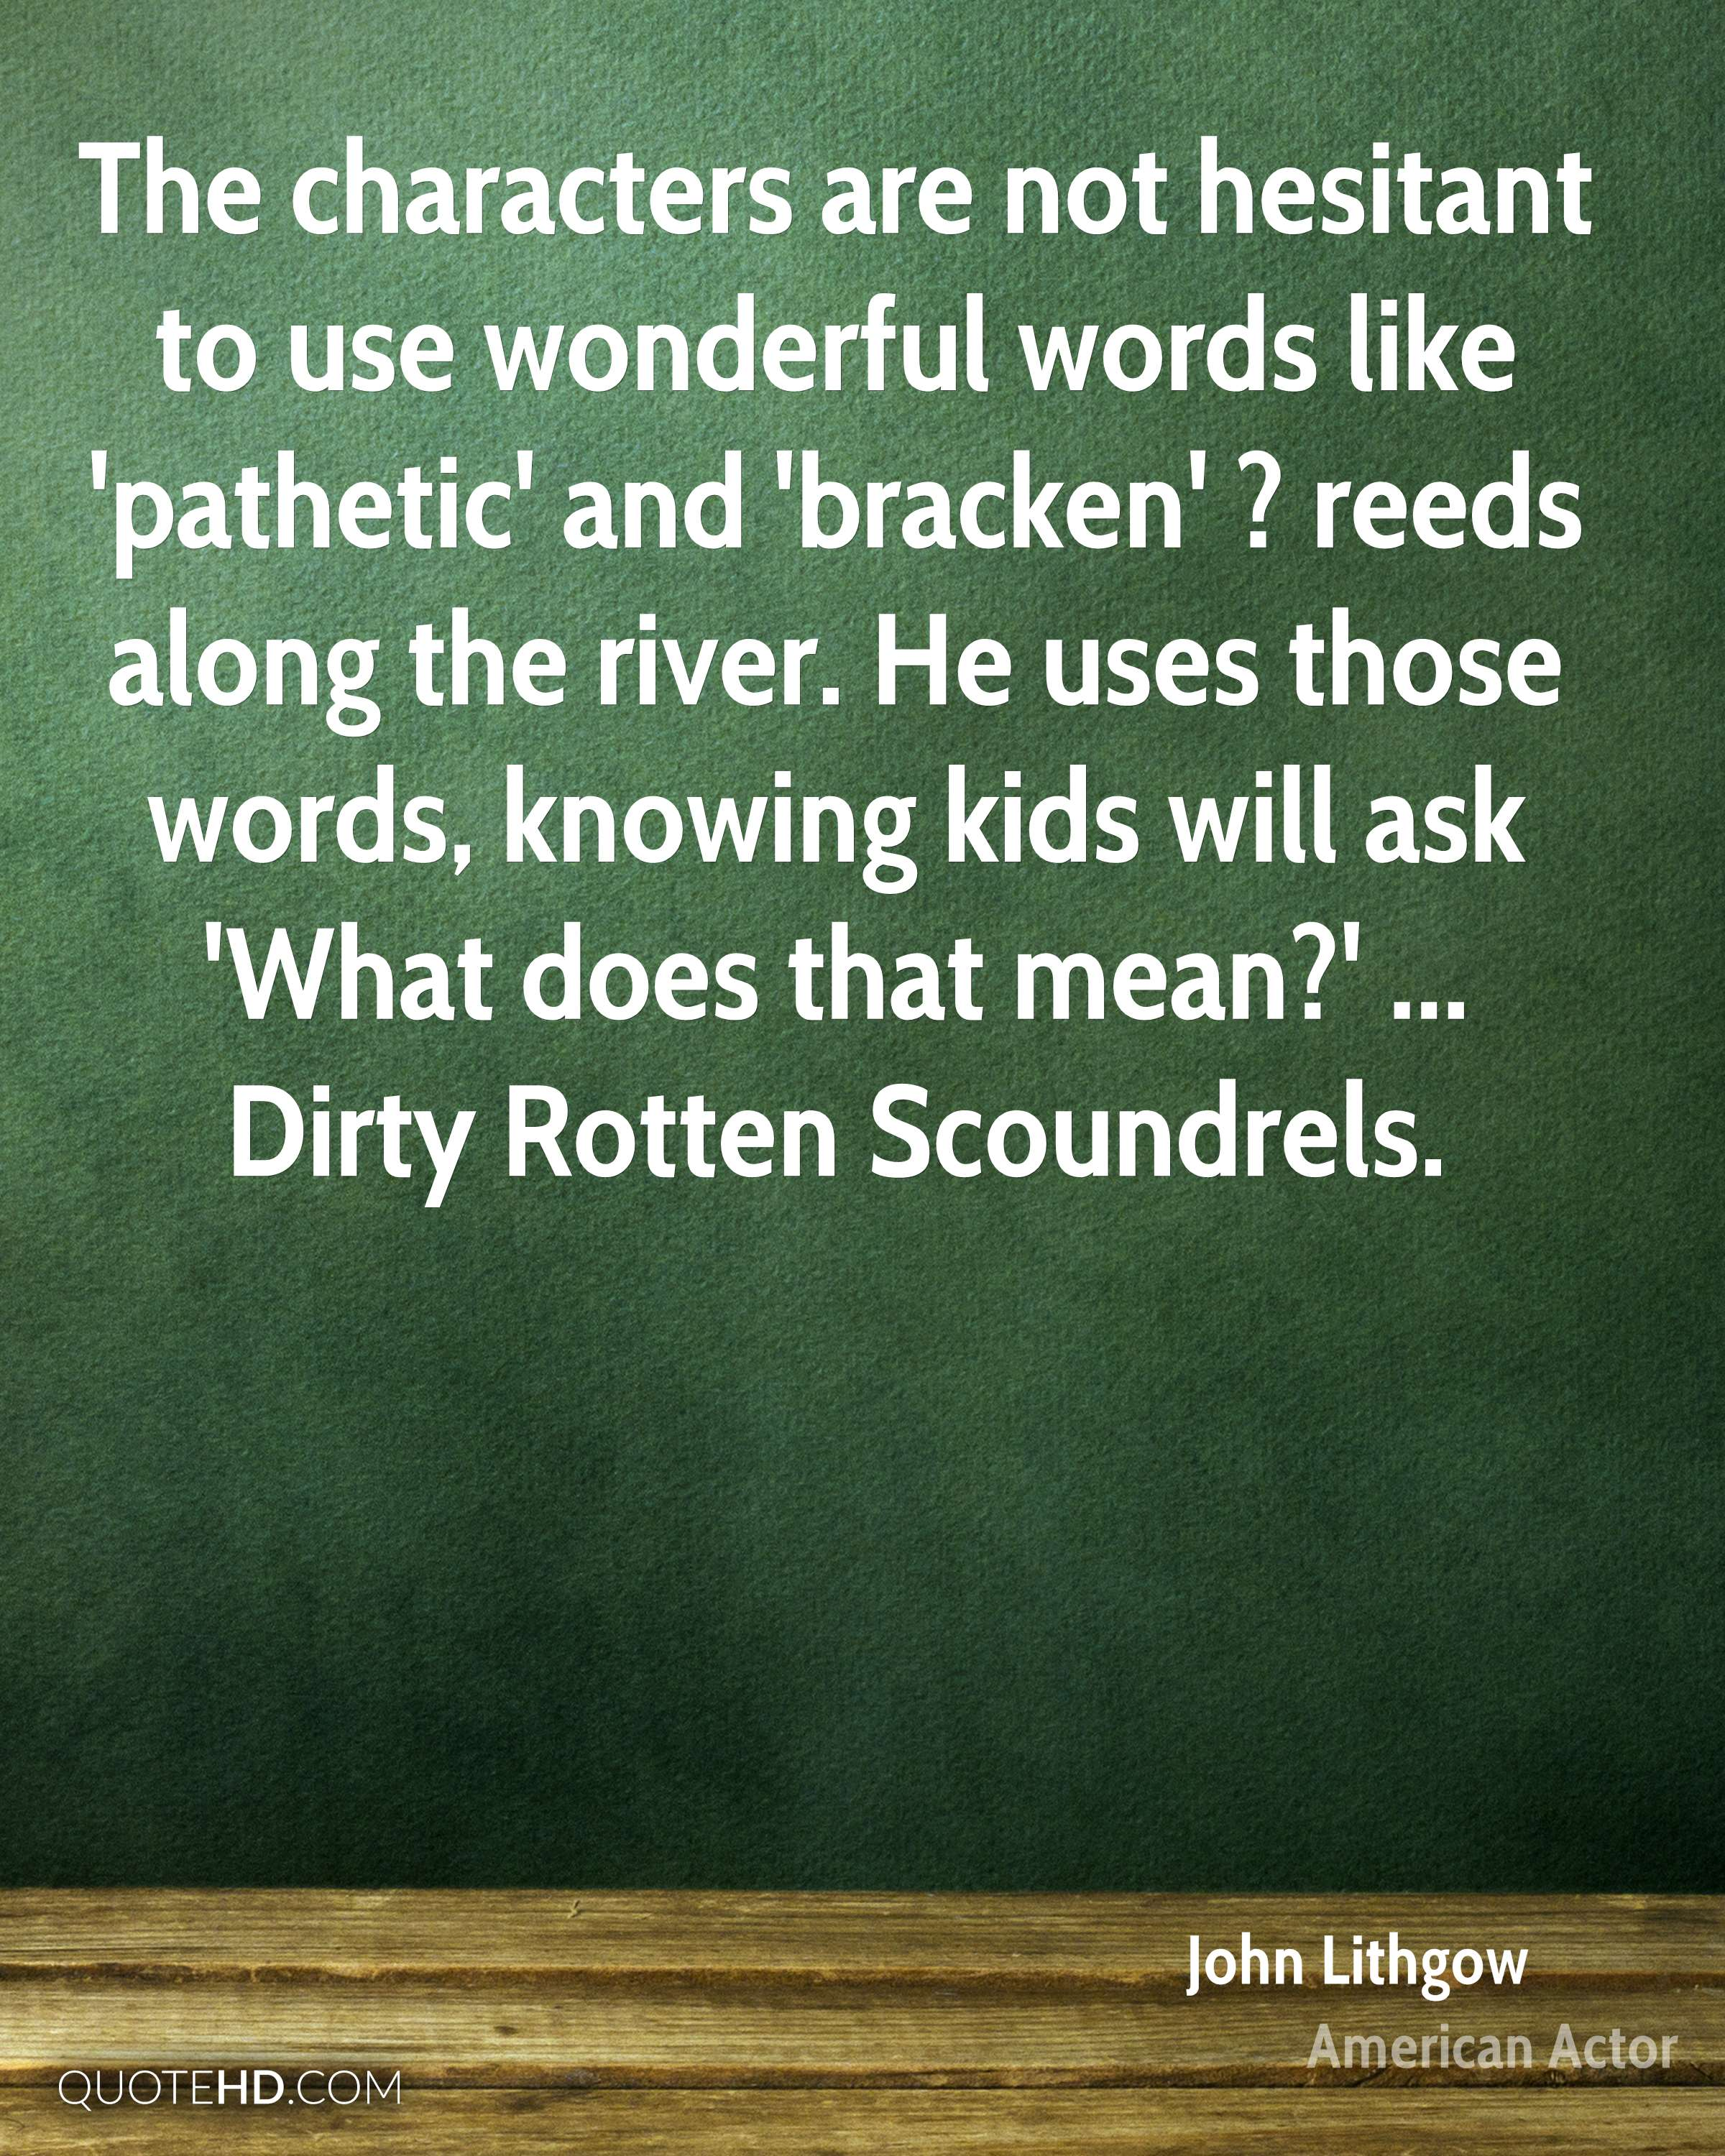 The characters are not hesitant to use wonderful words like 'pathetic' and 'bracken' ? reeds along the river. He uses those words, knowing kids will ask 'What does that mean?' ... Dirty Rotten Scoundrels.